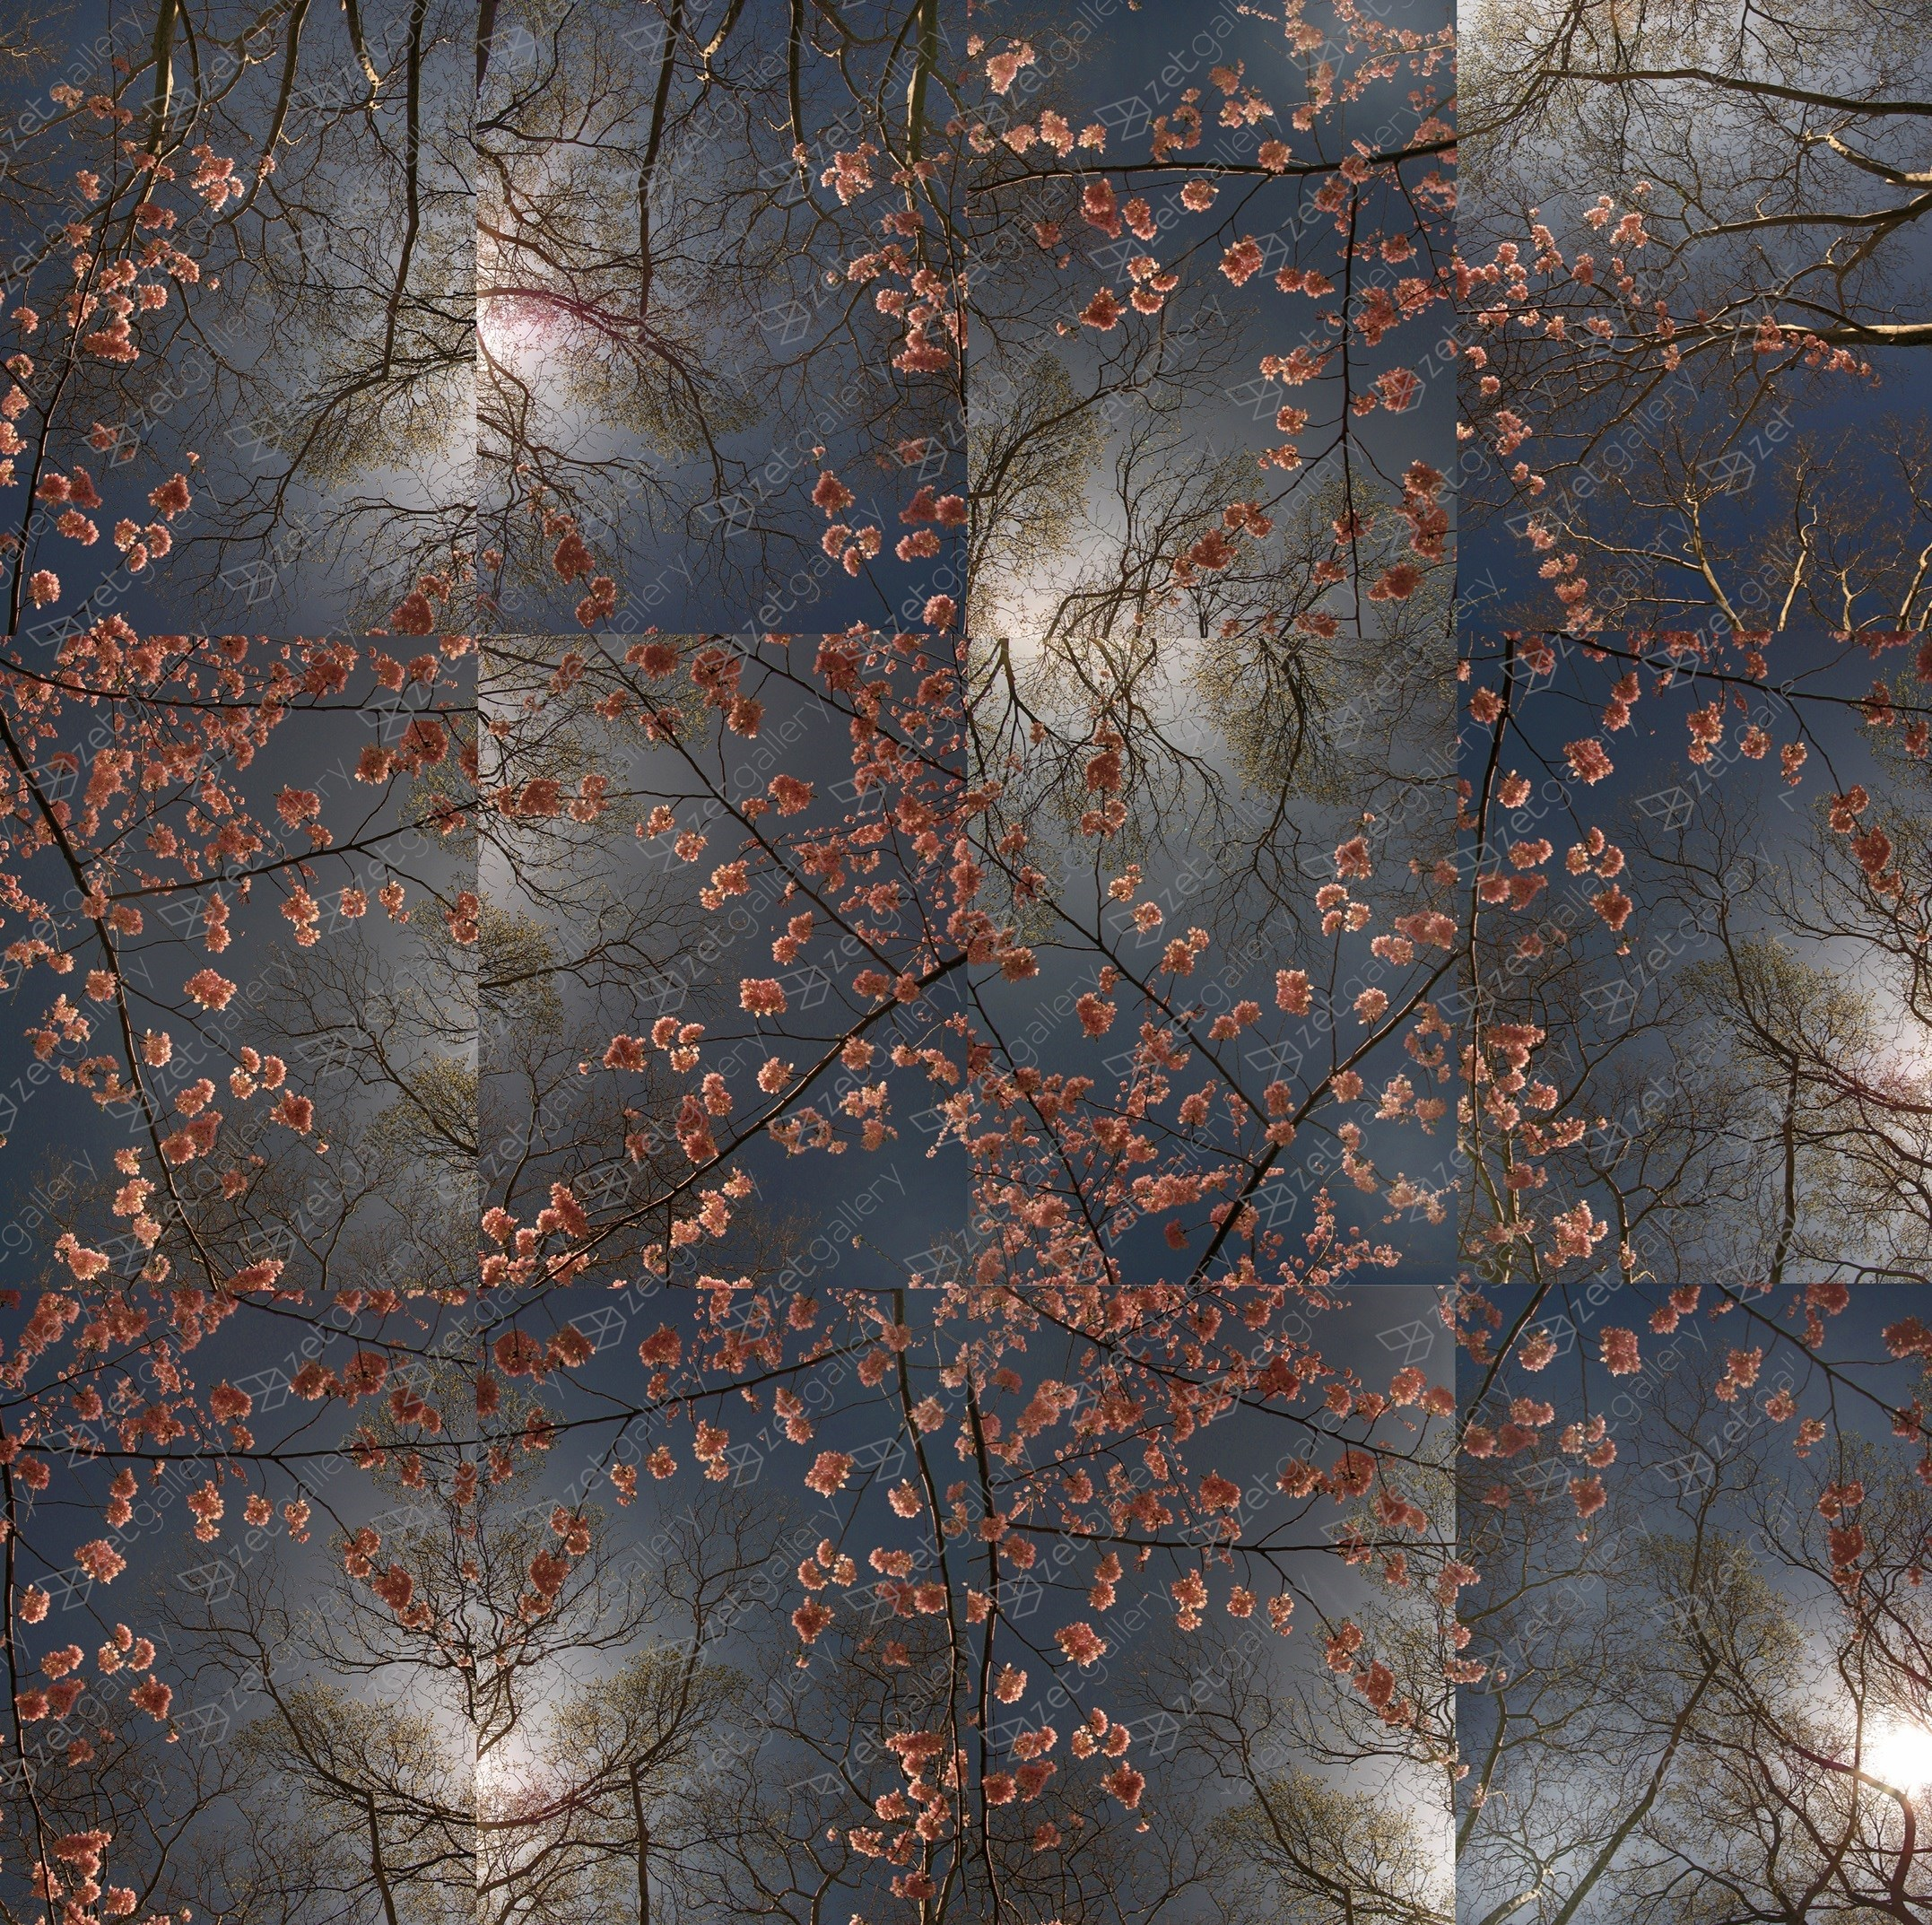 Early Spring - Cherry Blossom Bloom Opus 2, original Nature Digital Photography by Shimon and Tammar Rothstein